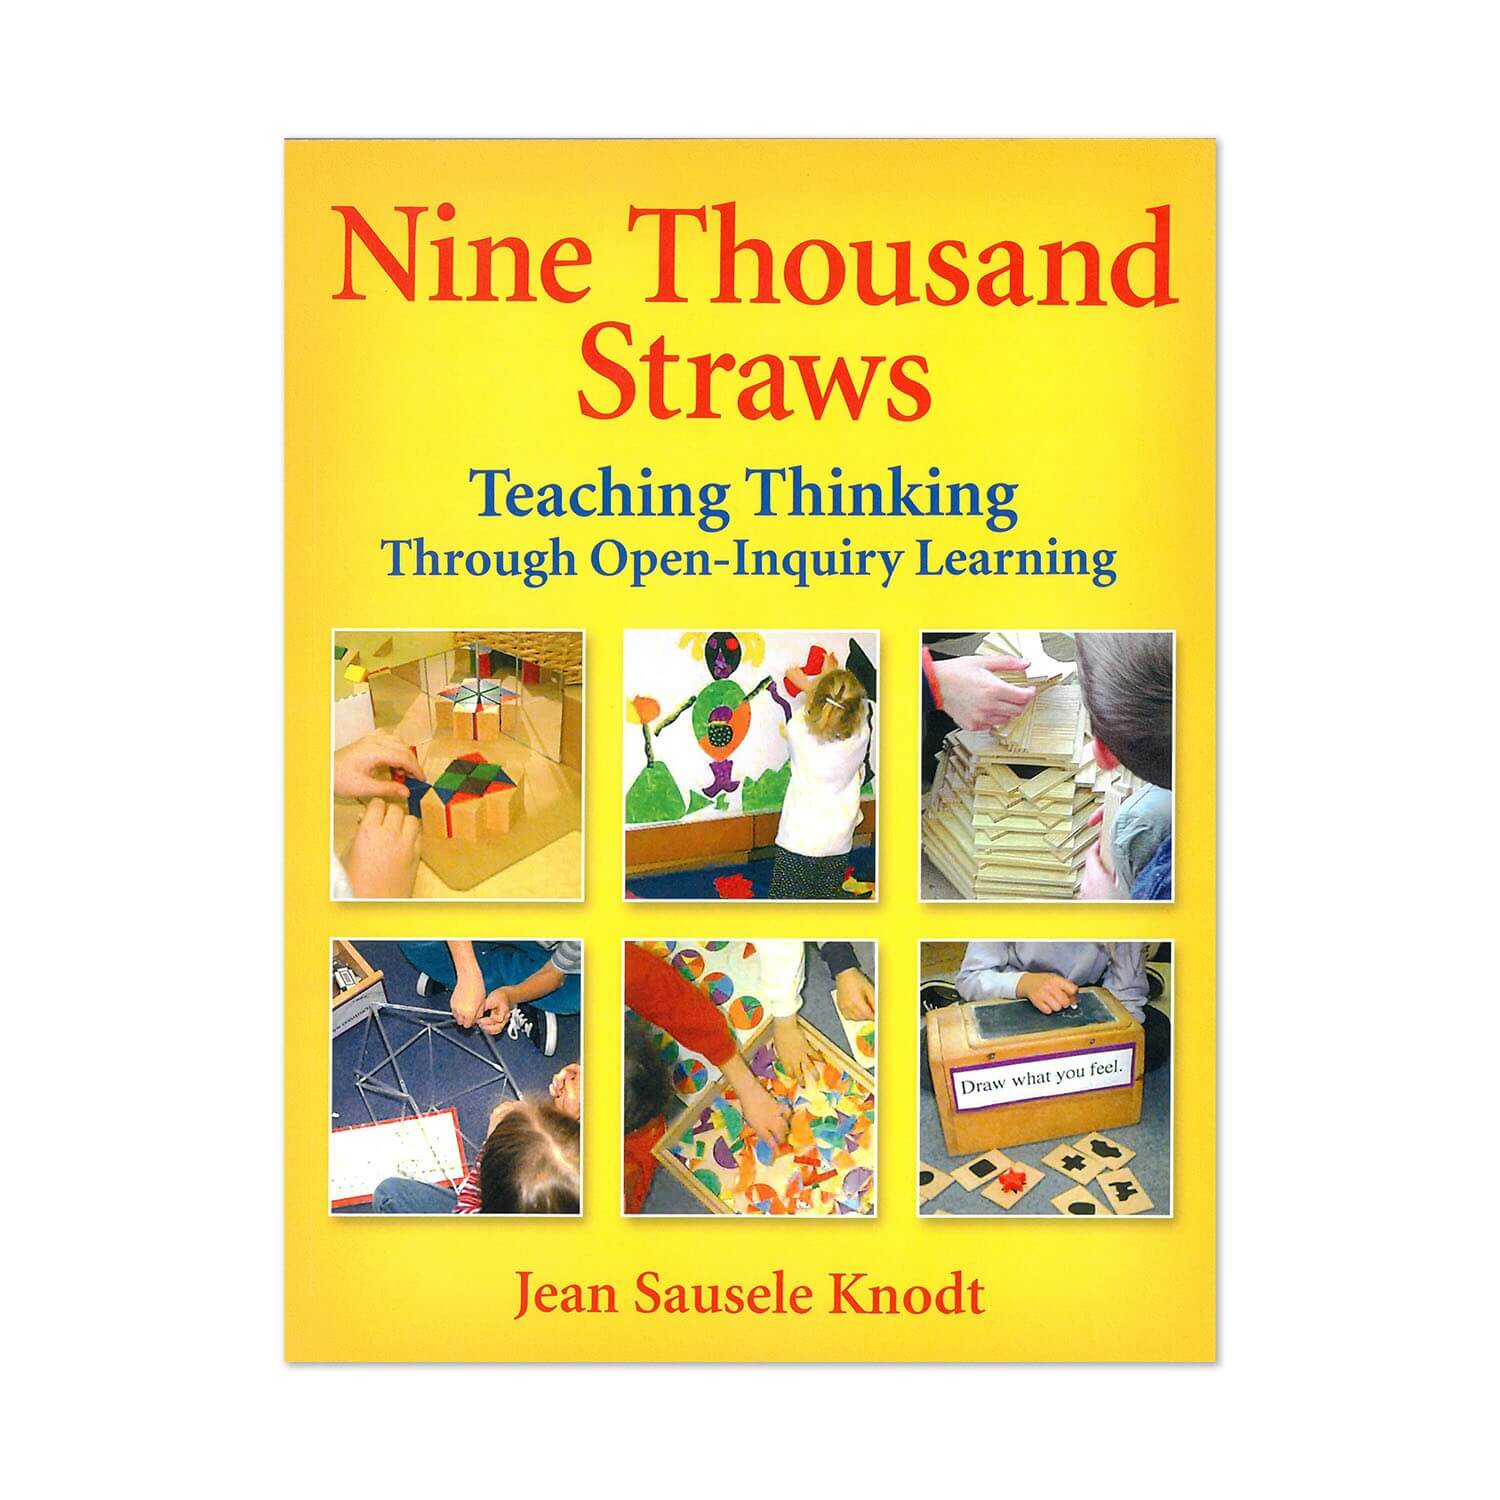 Nine Thousand Straws: Teaching Thinking Through Open-Inquiry